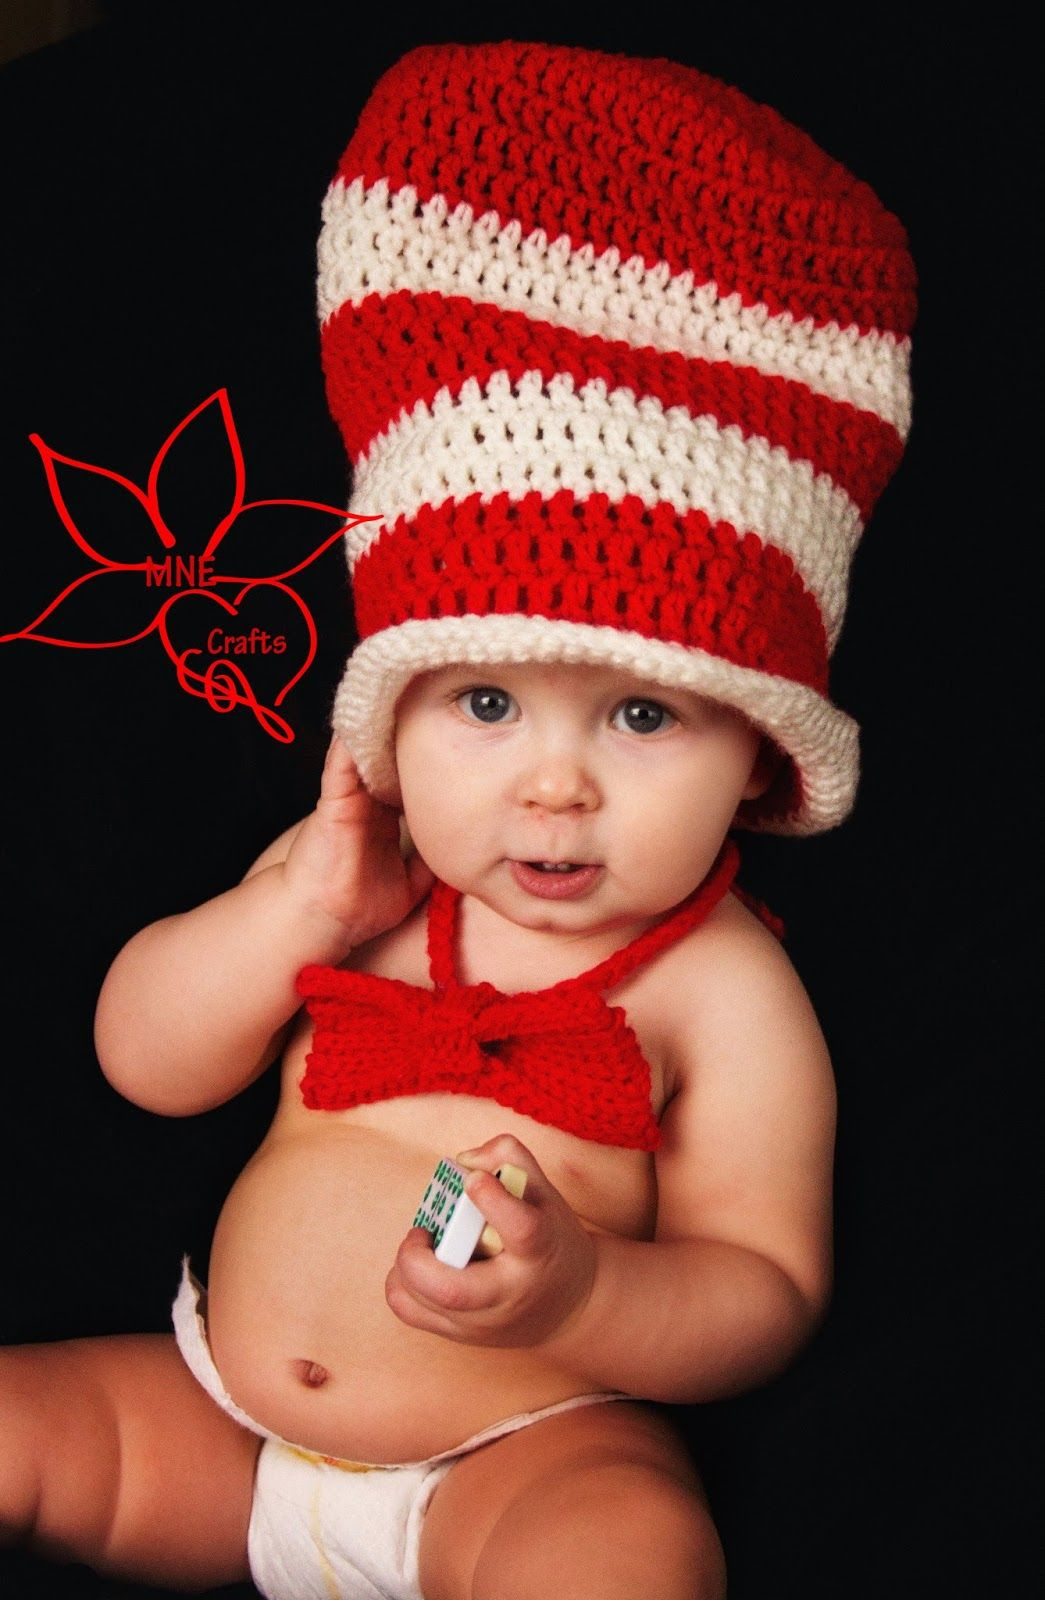 Mne crafts cat in the hat hat bow tie set blogger crochet seuss cat in the hat hat bow tie pattern by manda nicole for baby adult sizes bankloansurffo Gallery